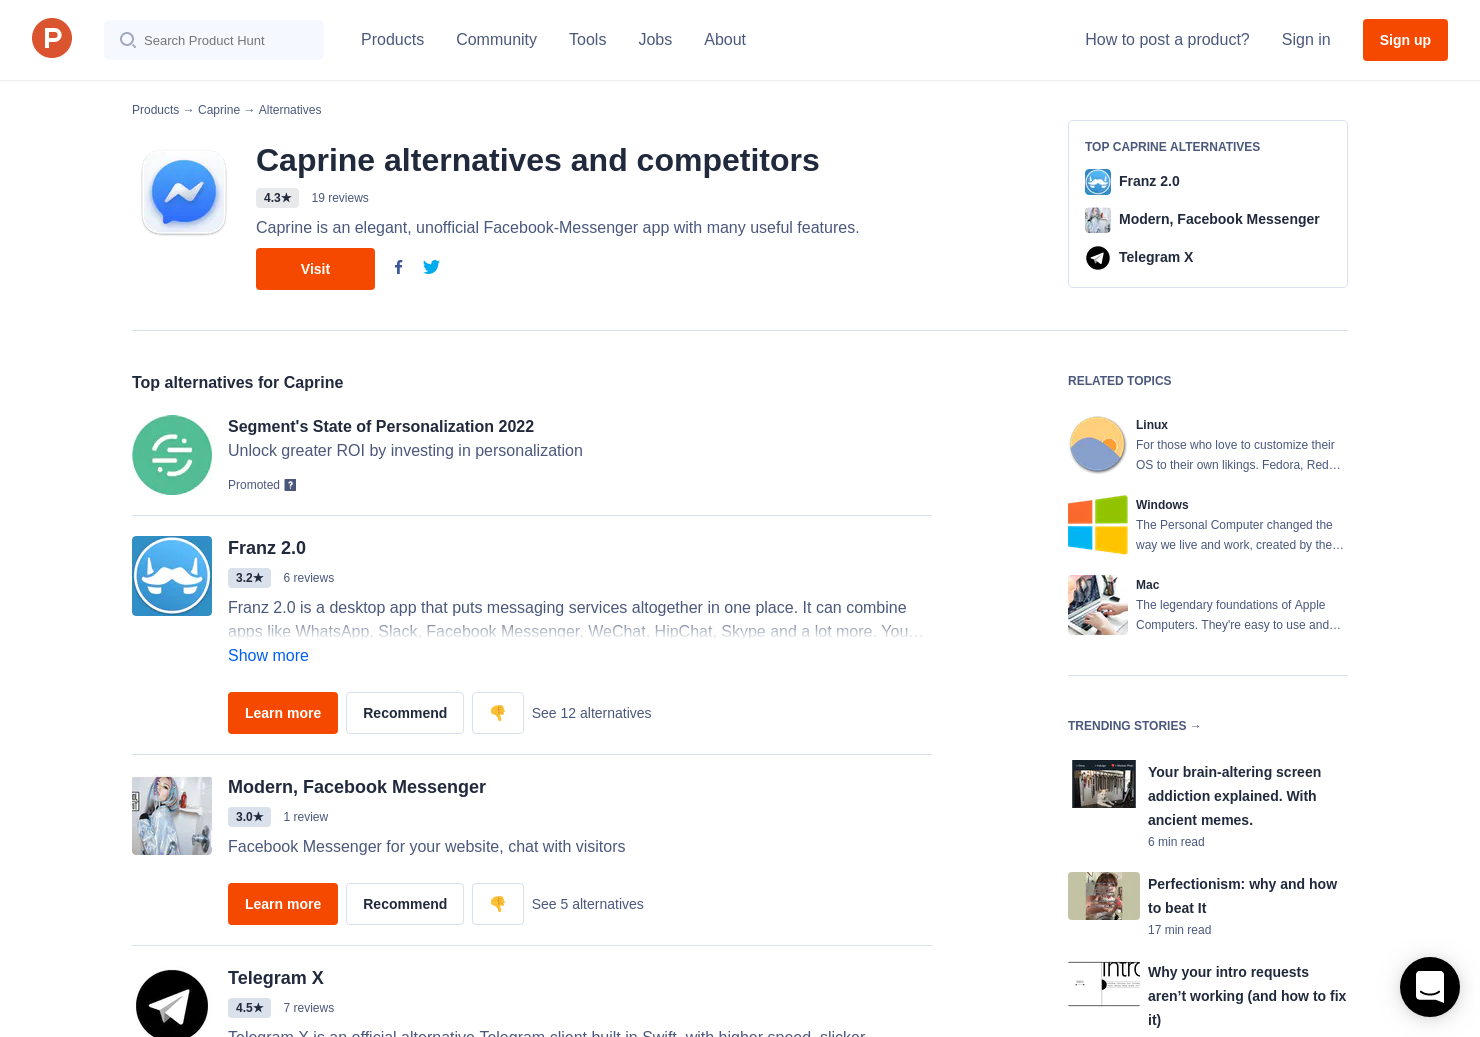 7 Alternatives to Caprine for Linux, Windows, Mac | Product Hunt